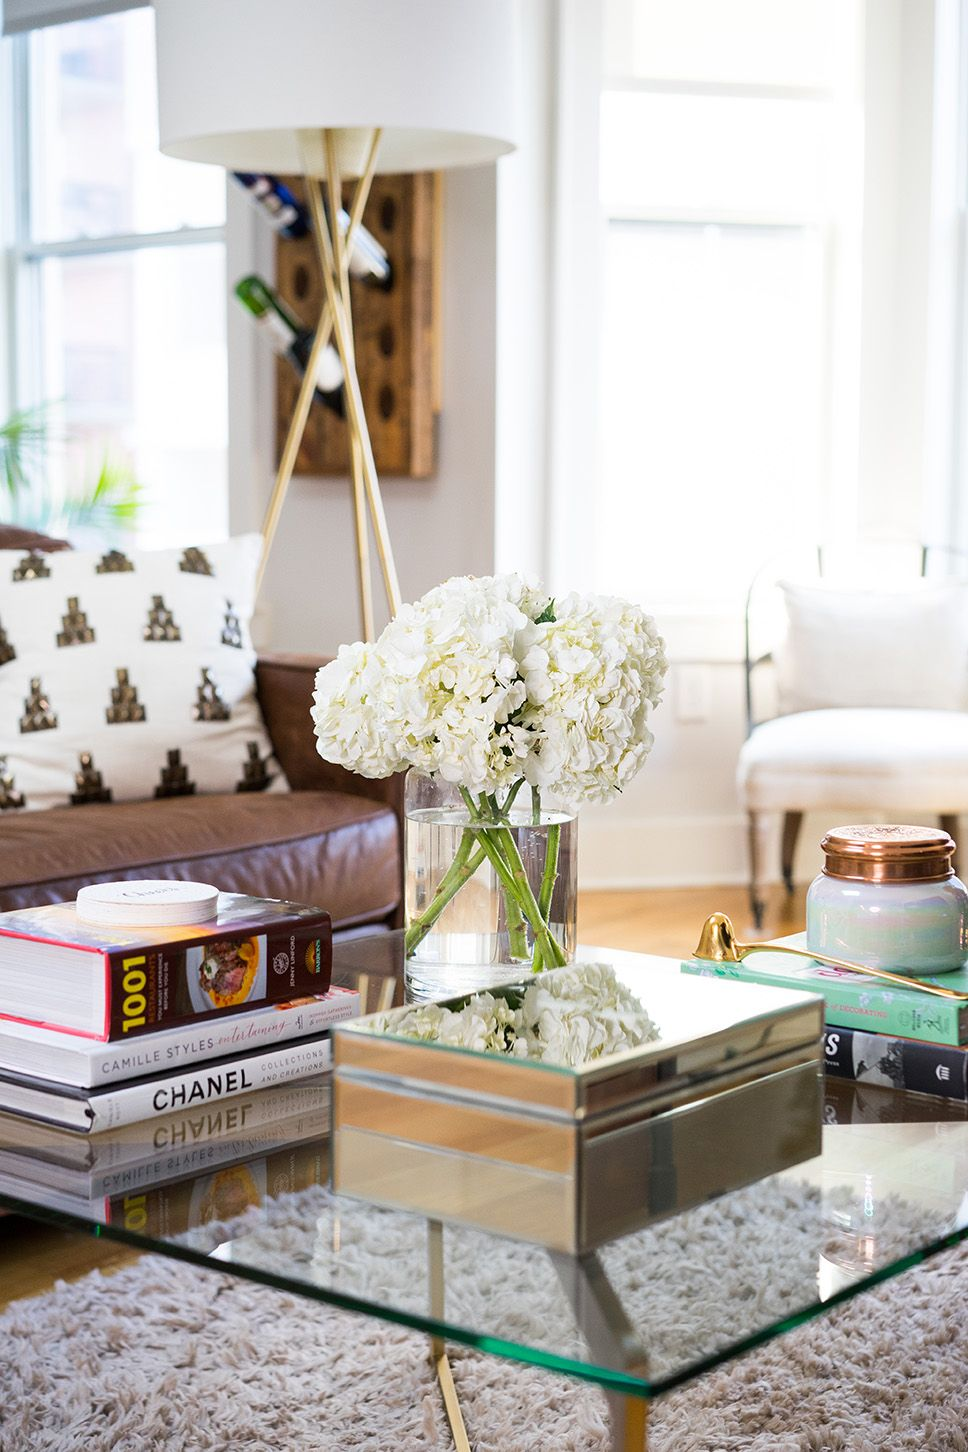 5 Ideas For A Do-It-Yourself Coffee Table, Let\'s Do It! | Pinterest ...